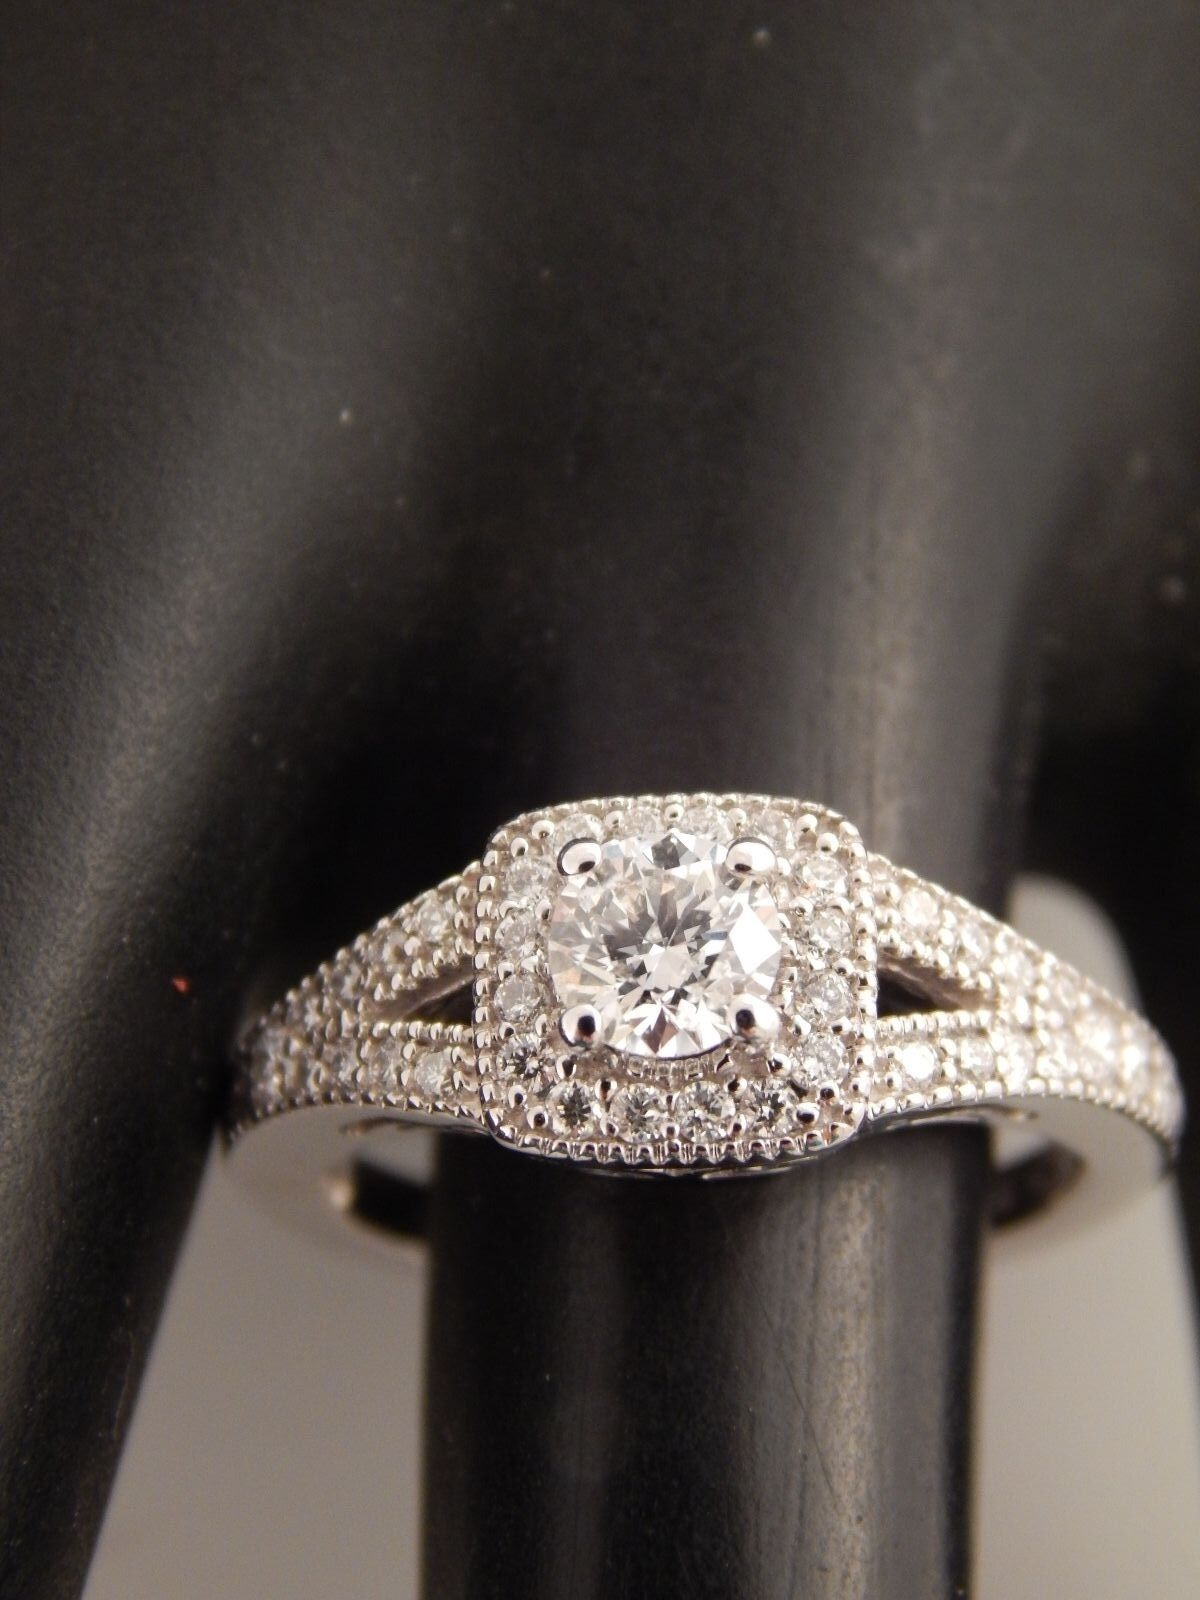 14k WG Round Diamond Halo Engagement Ring .91 tcw G SI eye clean Excellent Cut